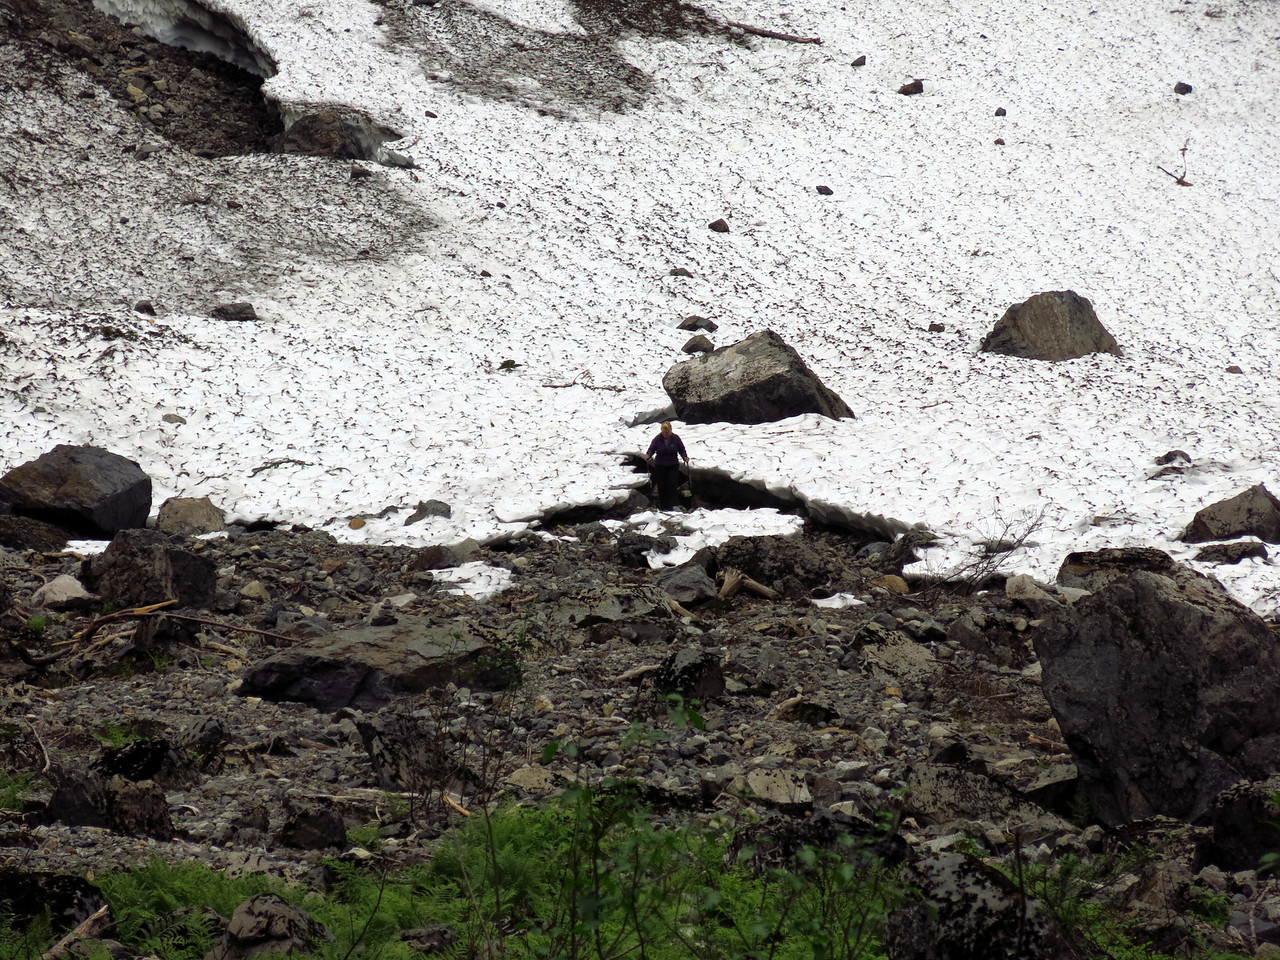 A telephoto view of the person (in the center of the picture).   She is standing at the edge of the snowfield.